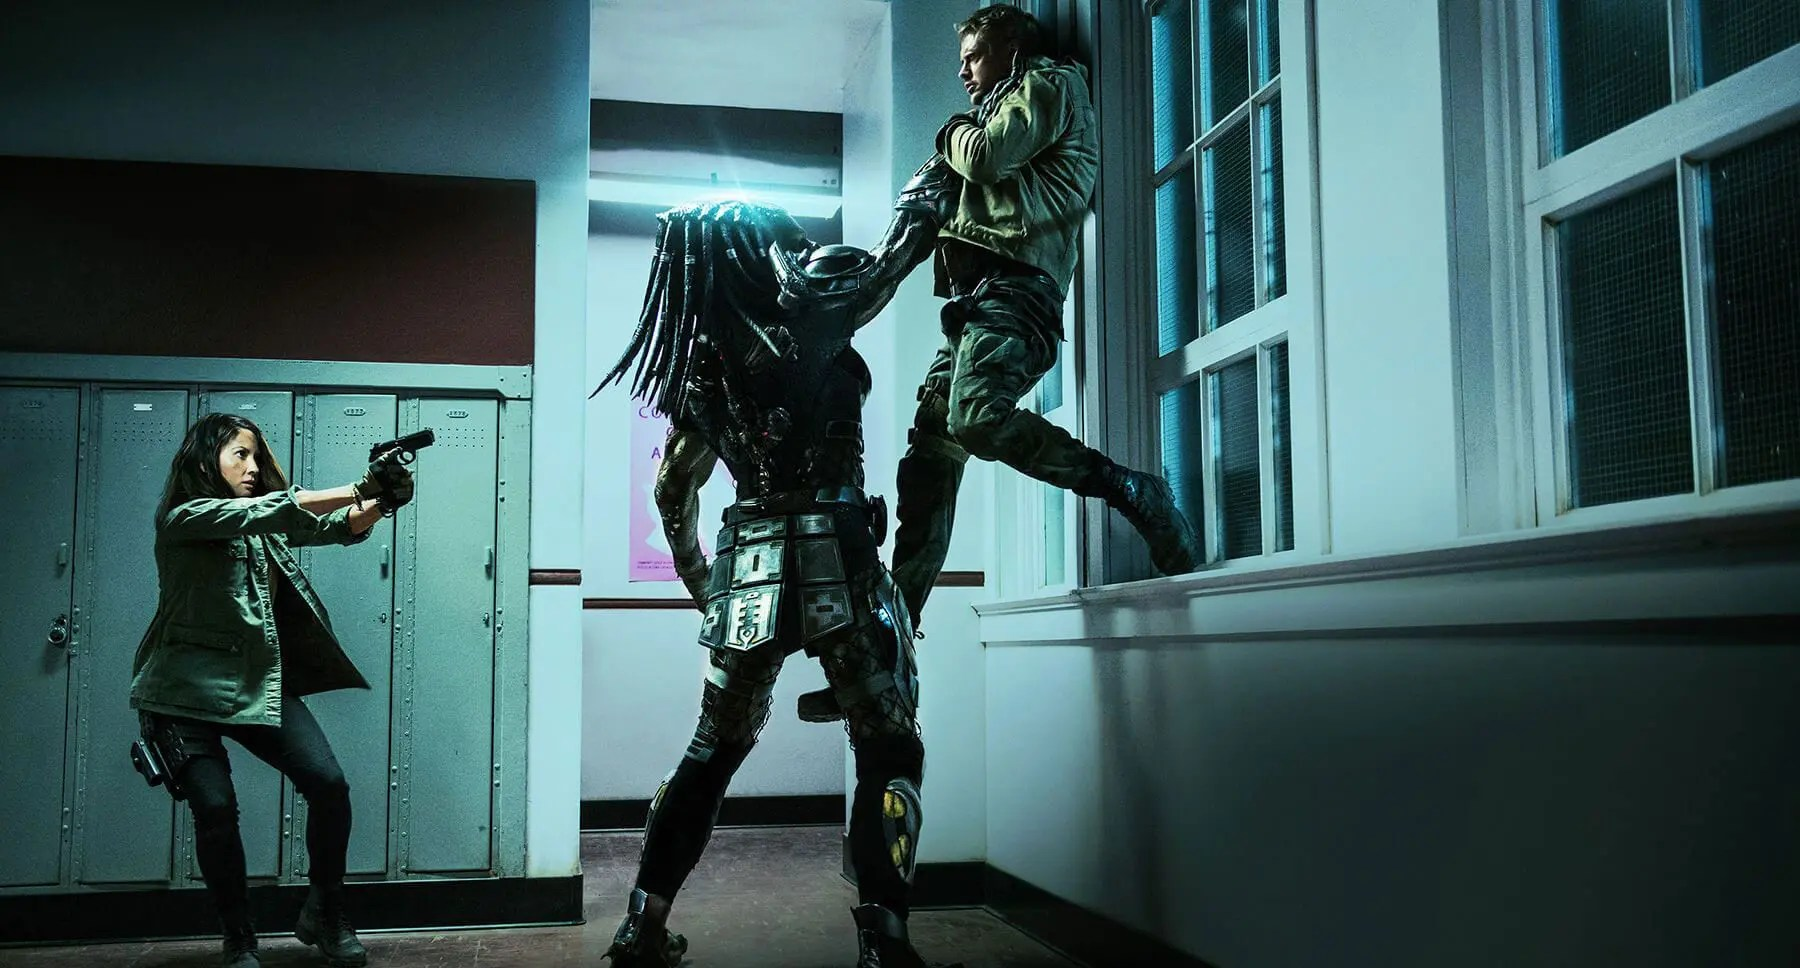 A Predator holding a woman by the throat against a wall